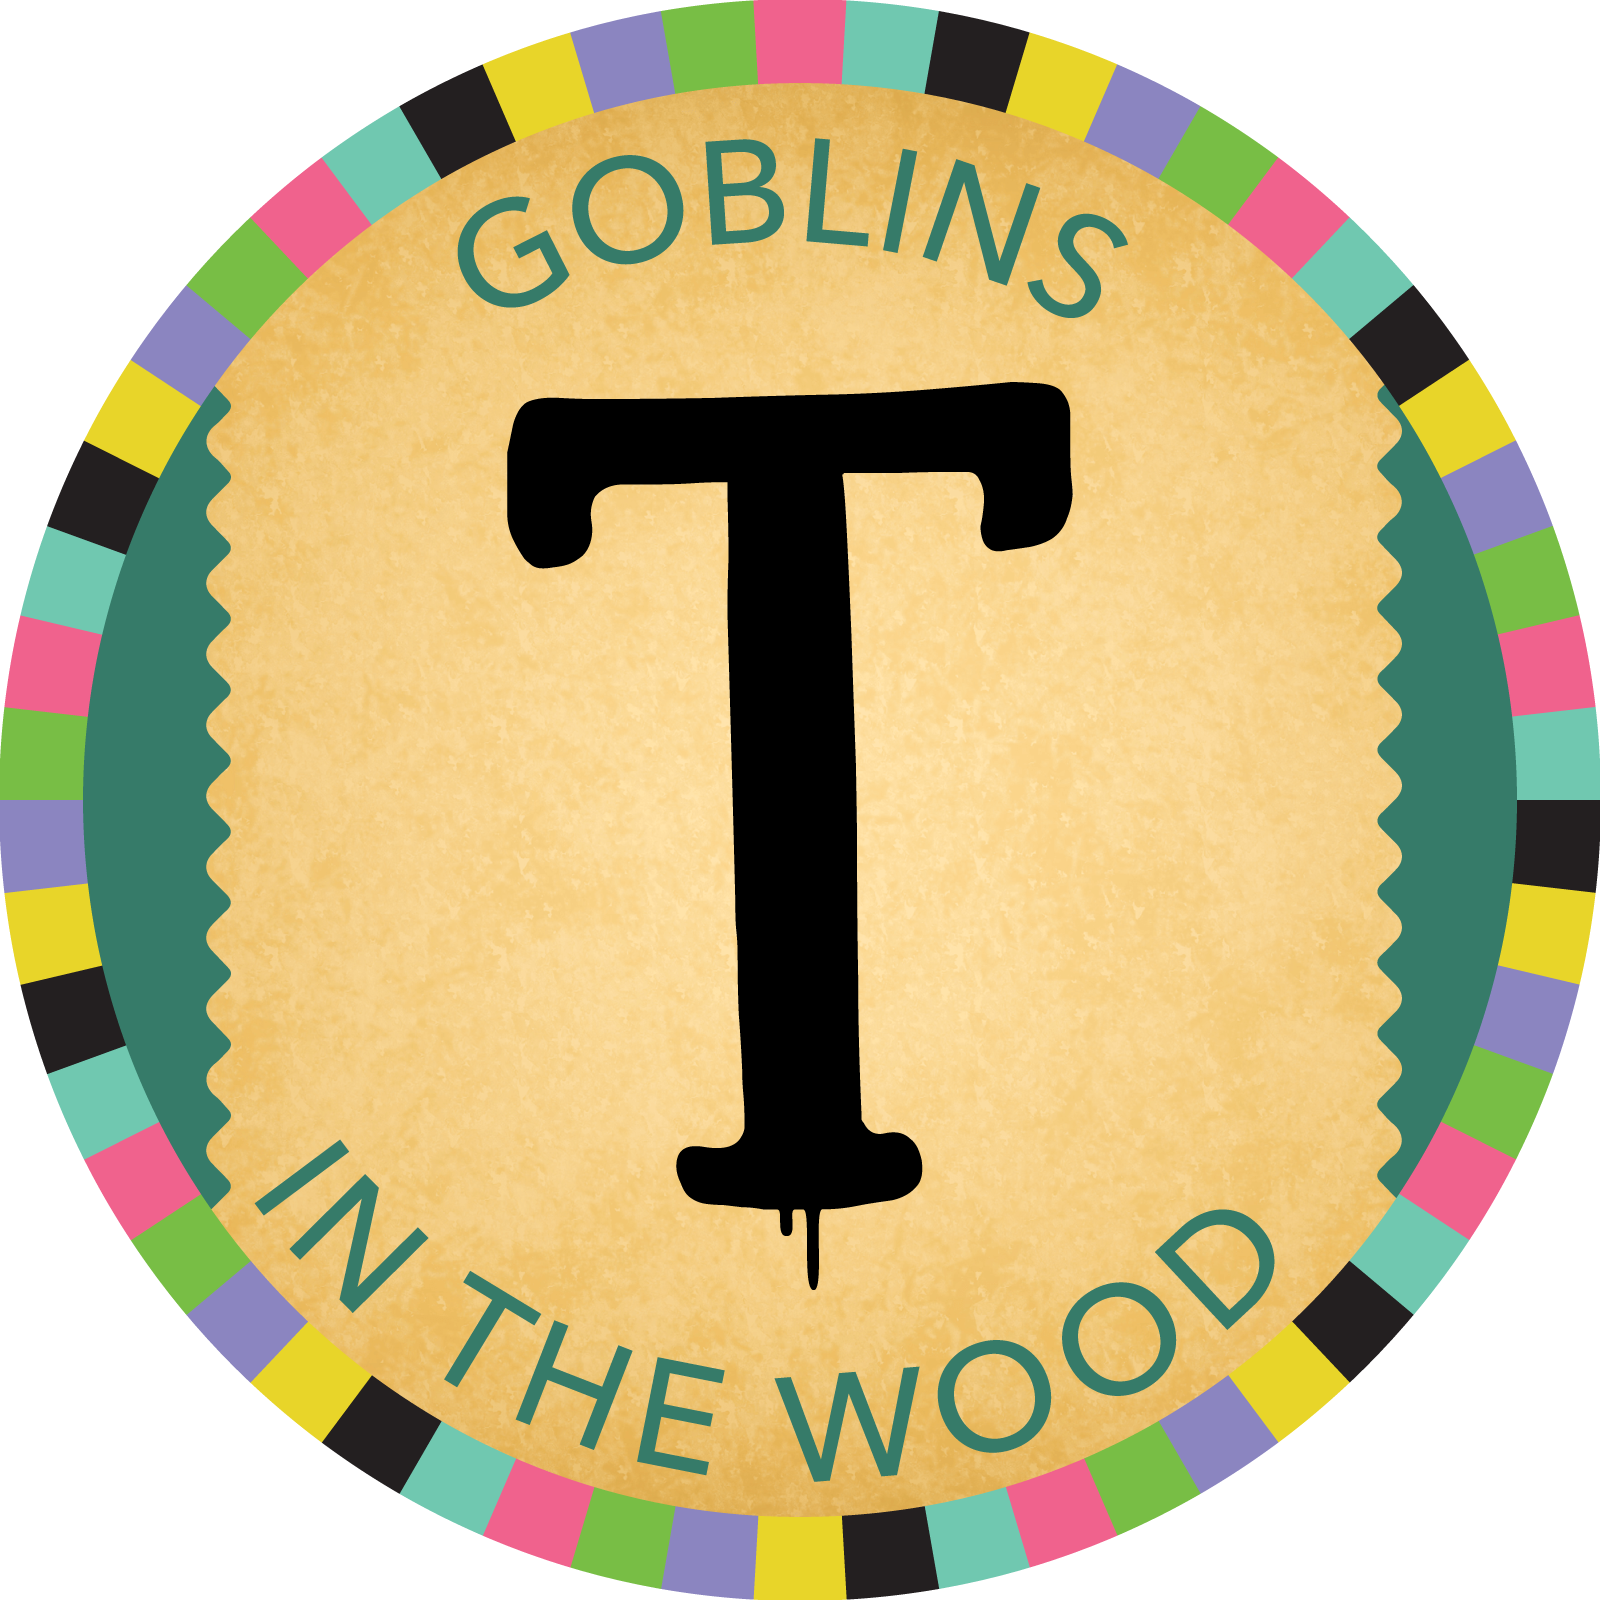 Goblins In The Wood badge image